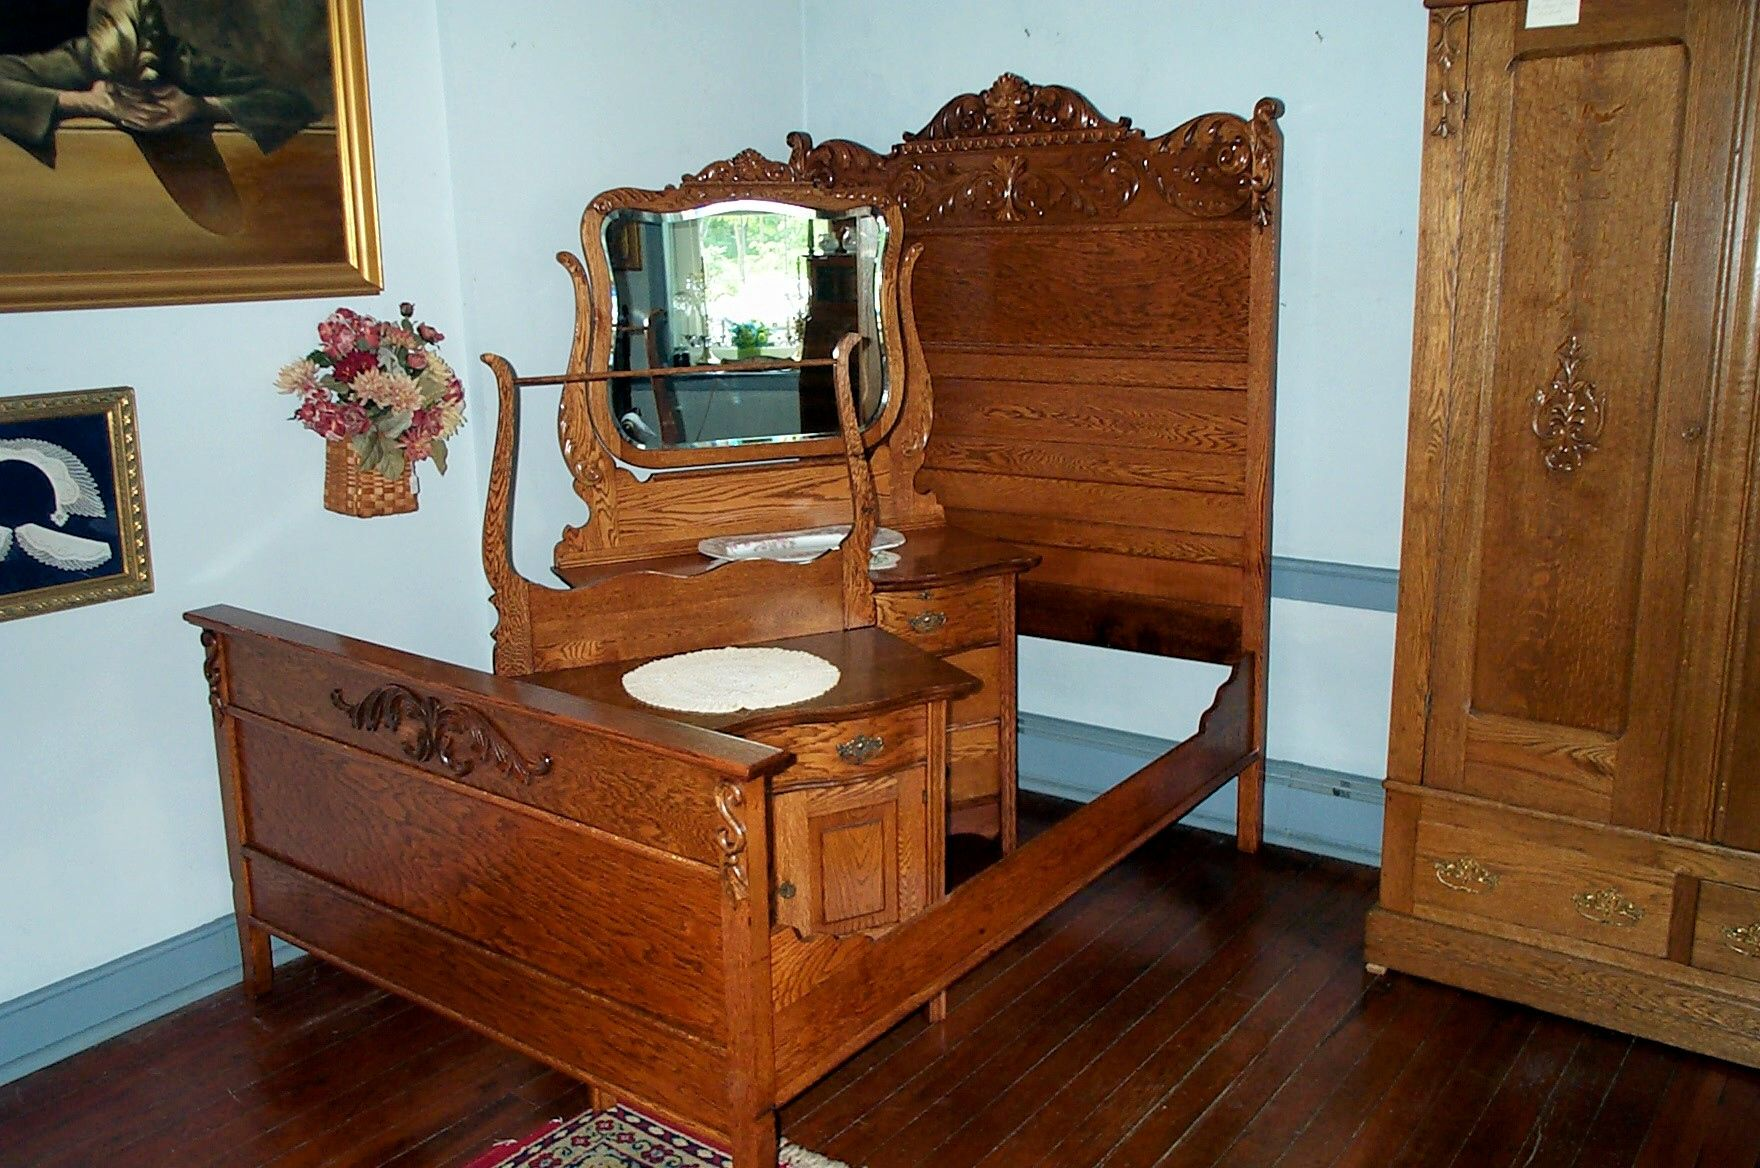 Craigslist Antique Furniture - Modern Contemporary Furniture Check ...